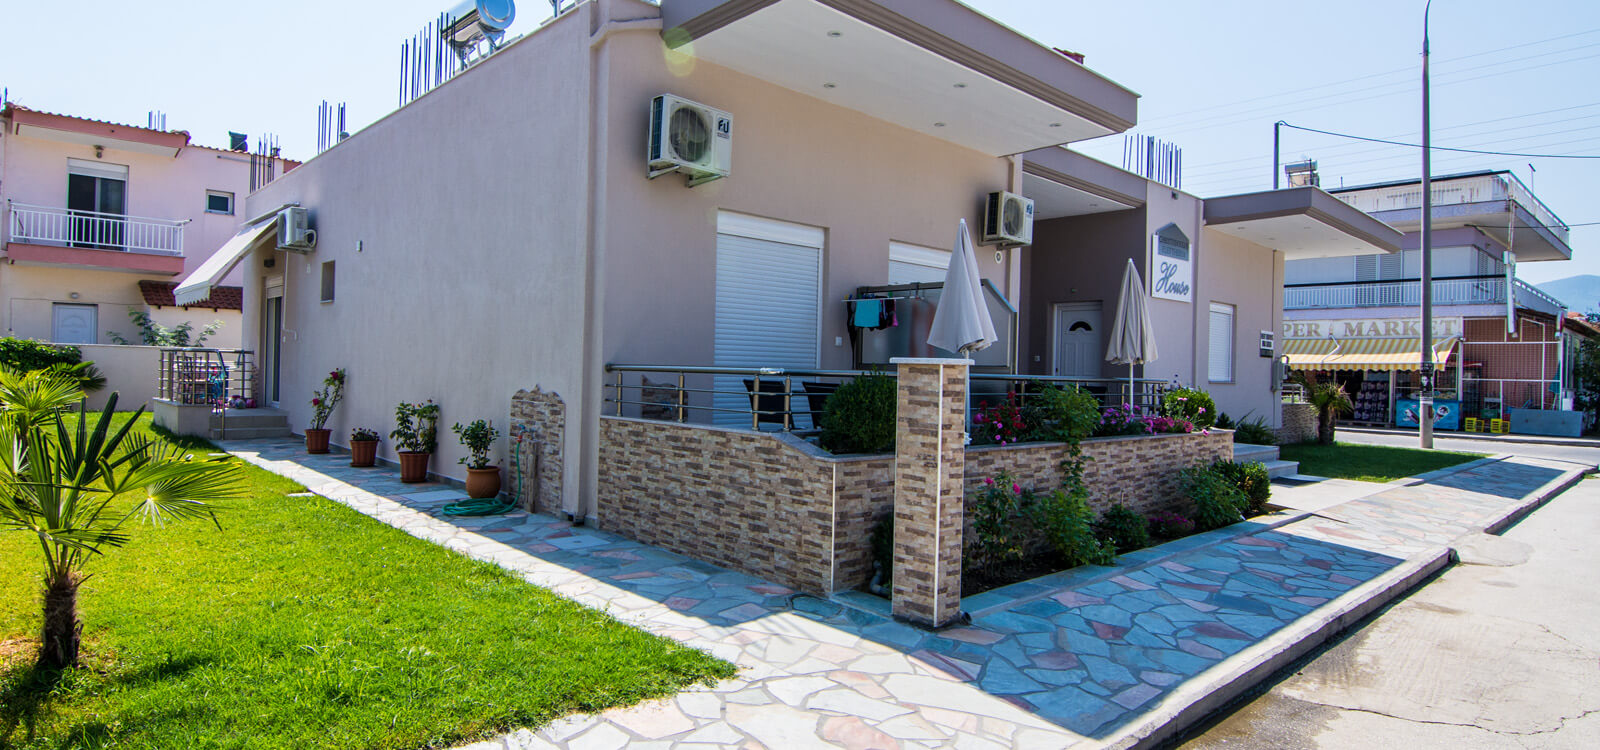 Christodoulos Eleftheria House Nea Vrasna Rent Rooms Apartments